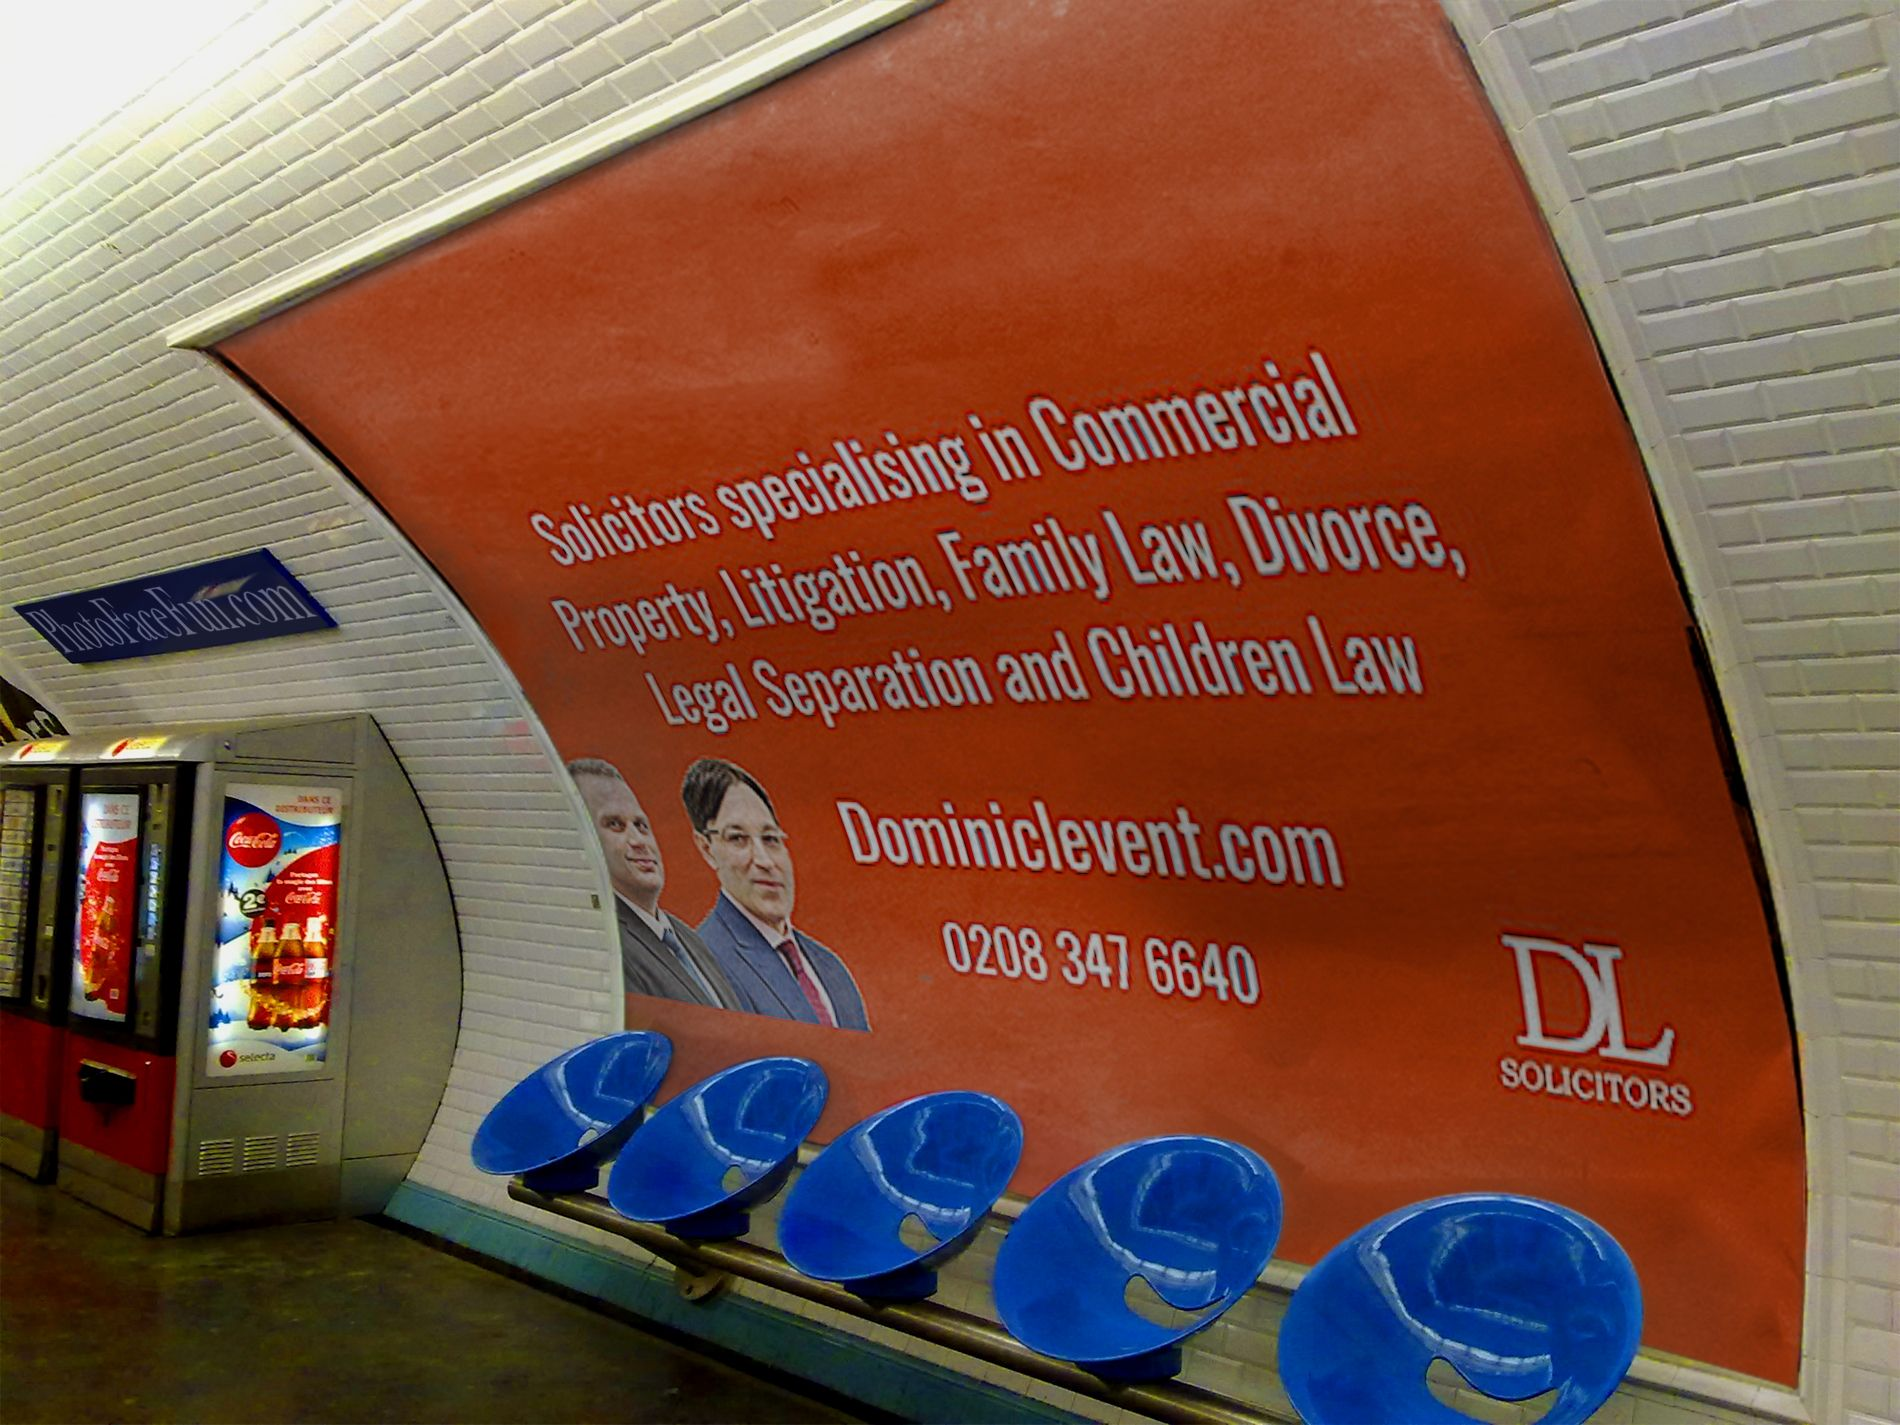 Solicitors specialising in Commercial Property, Litigation